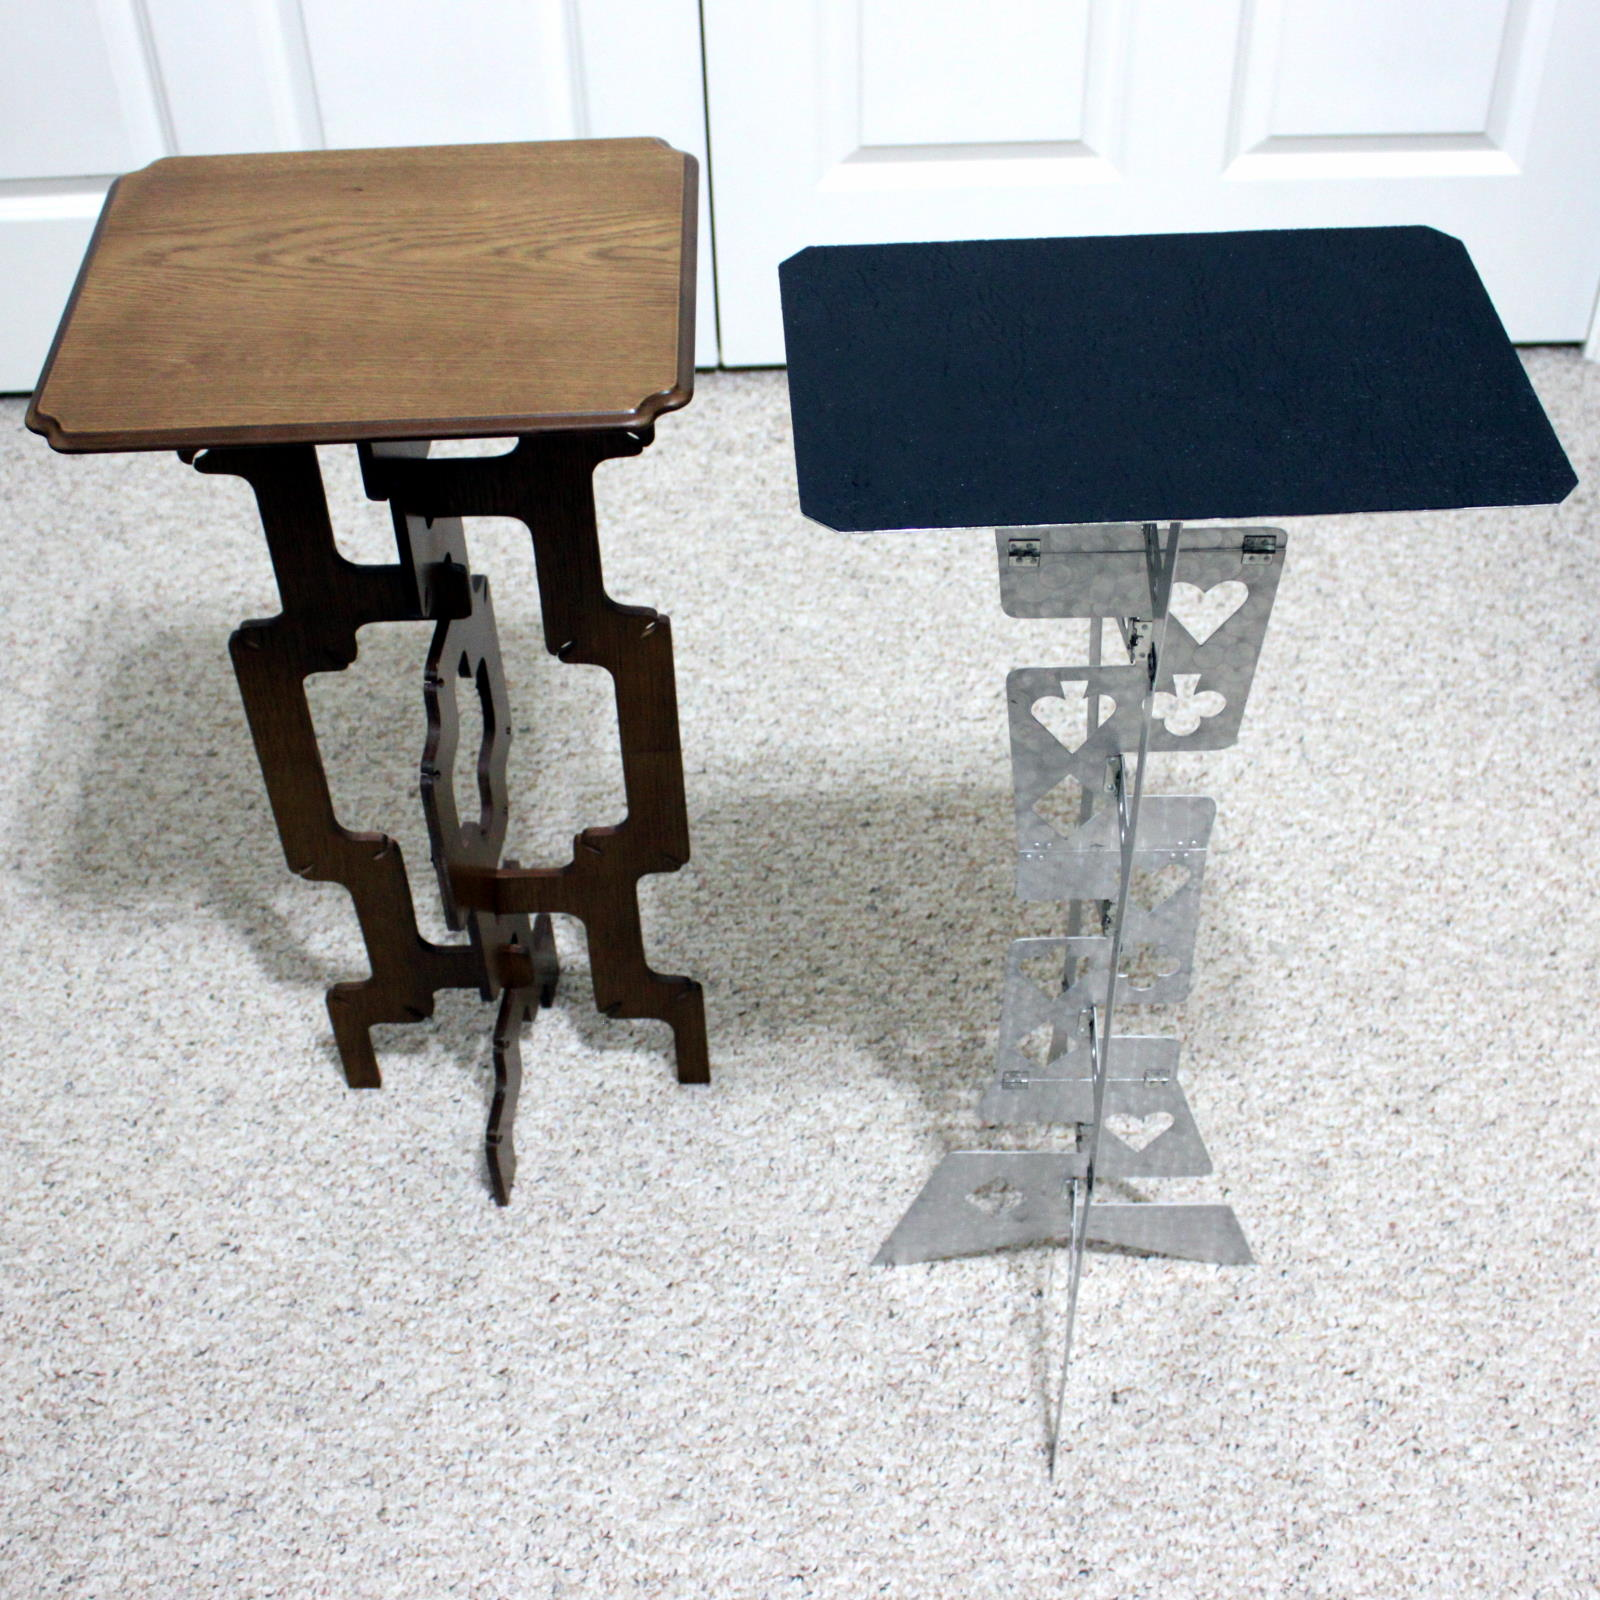 Harbin Style Table - Mikame by Mikame Craft